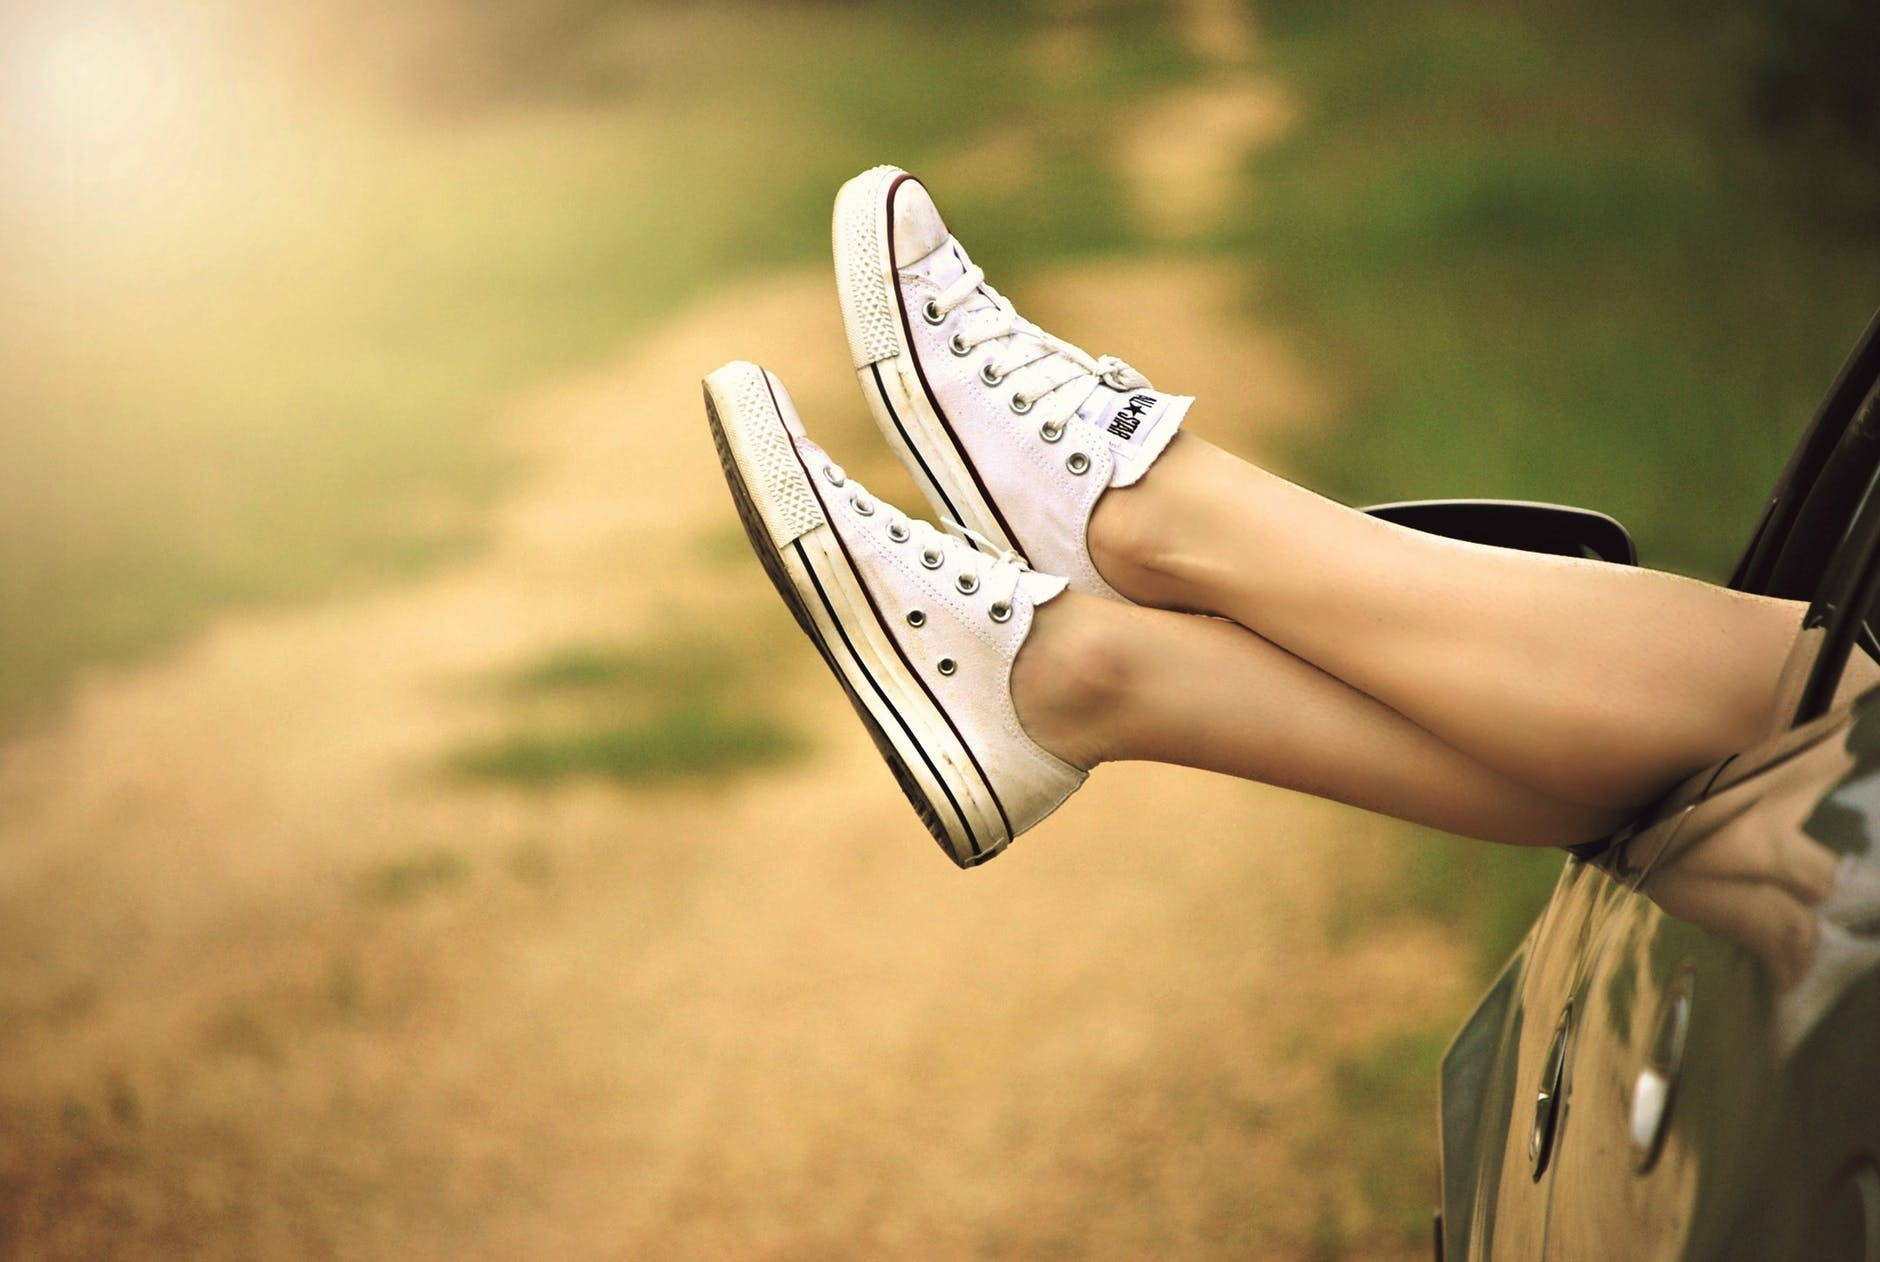 10 Best Shoes for Smelly Feet Reviewed